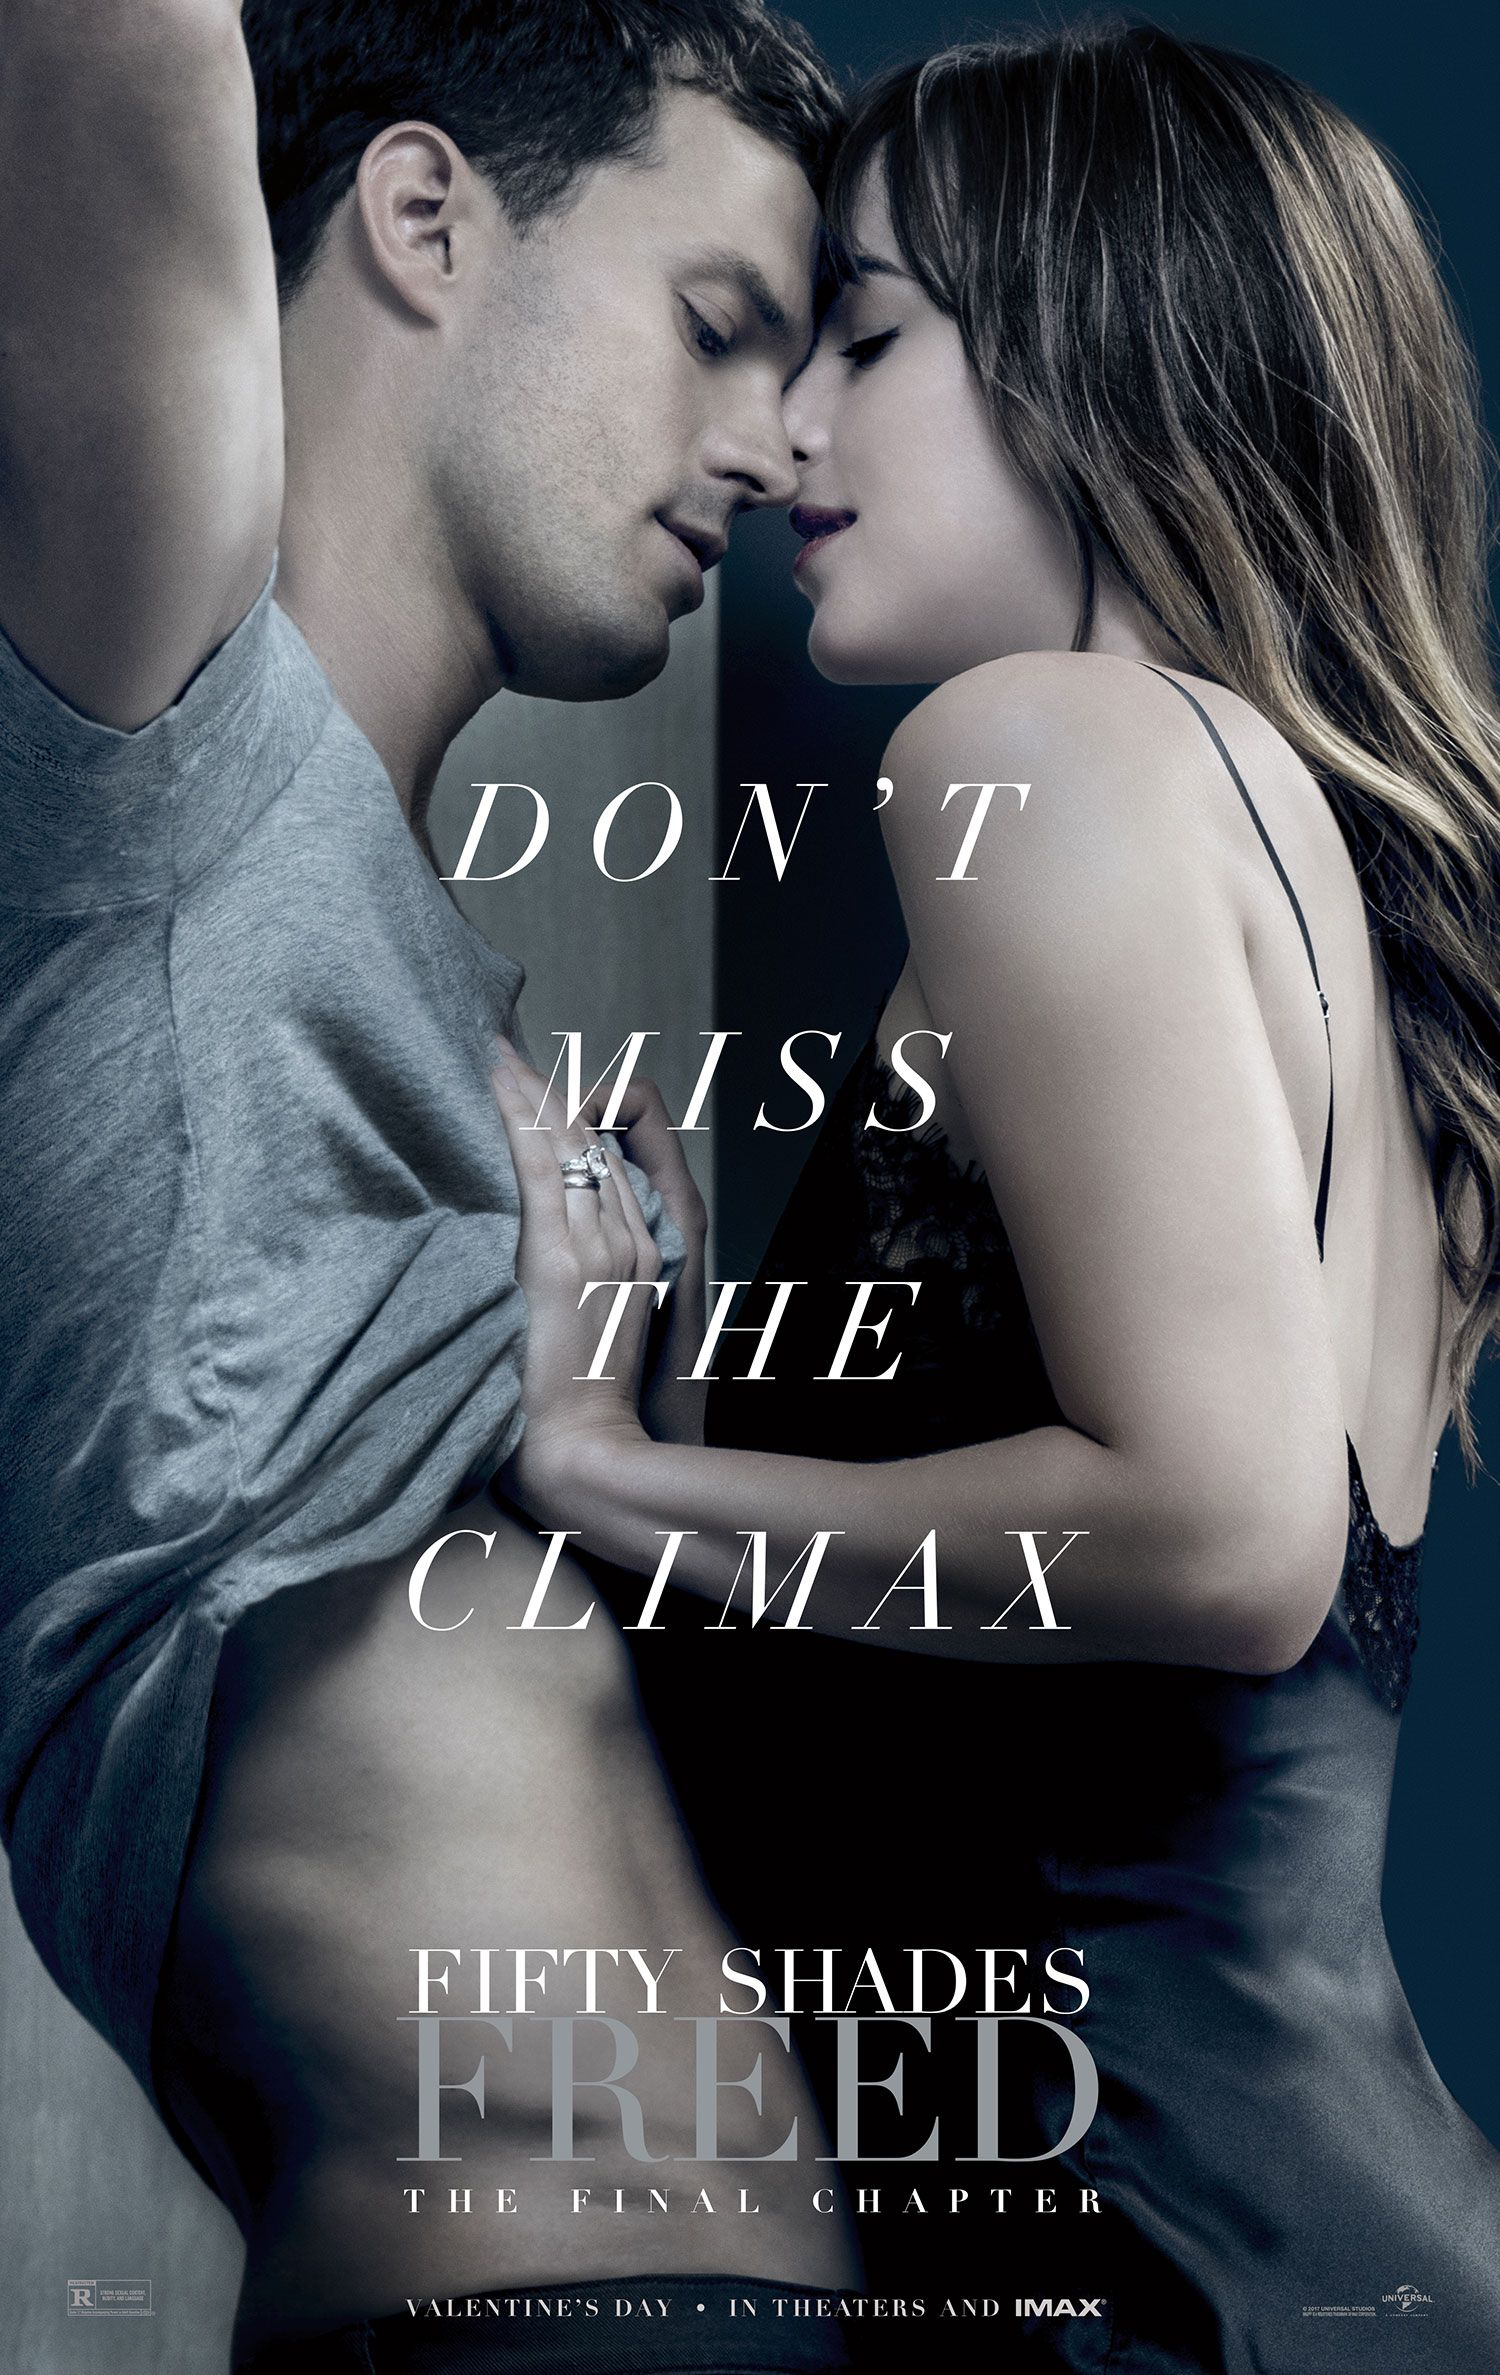 fifty shades of grey watch online movie free 123movies